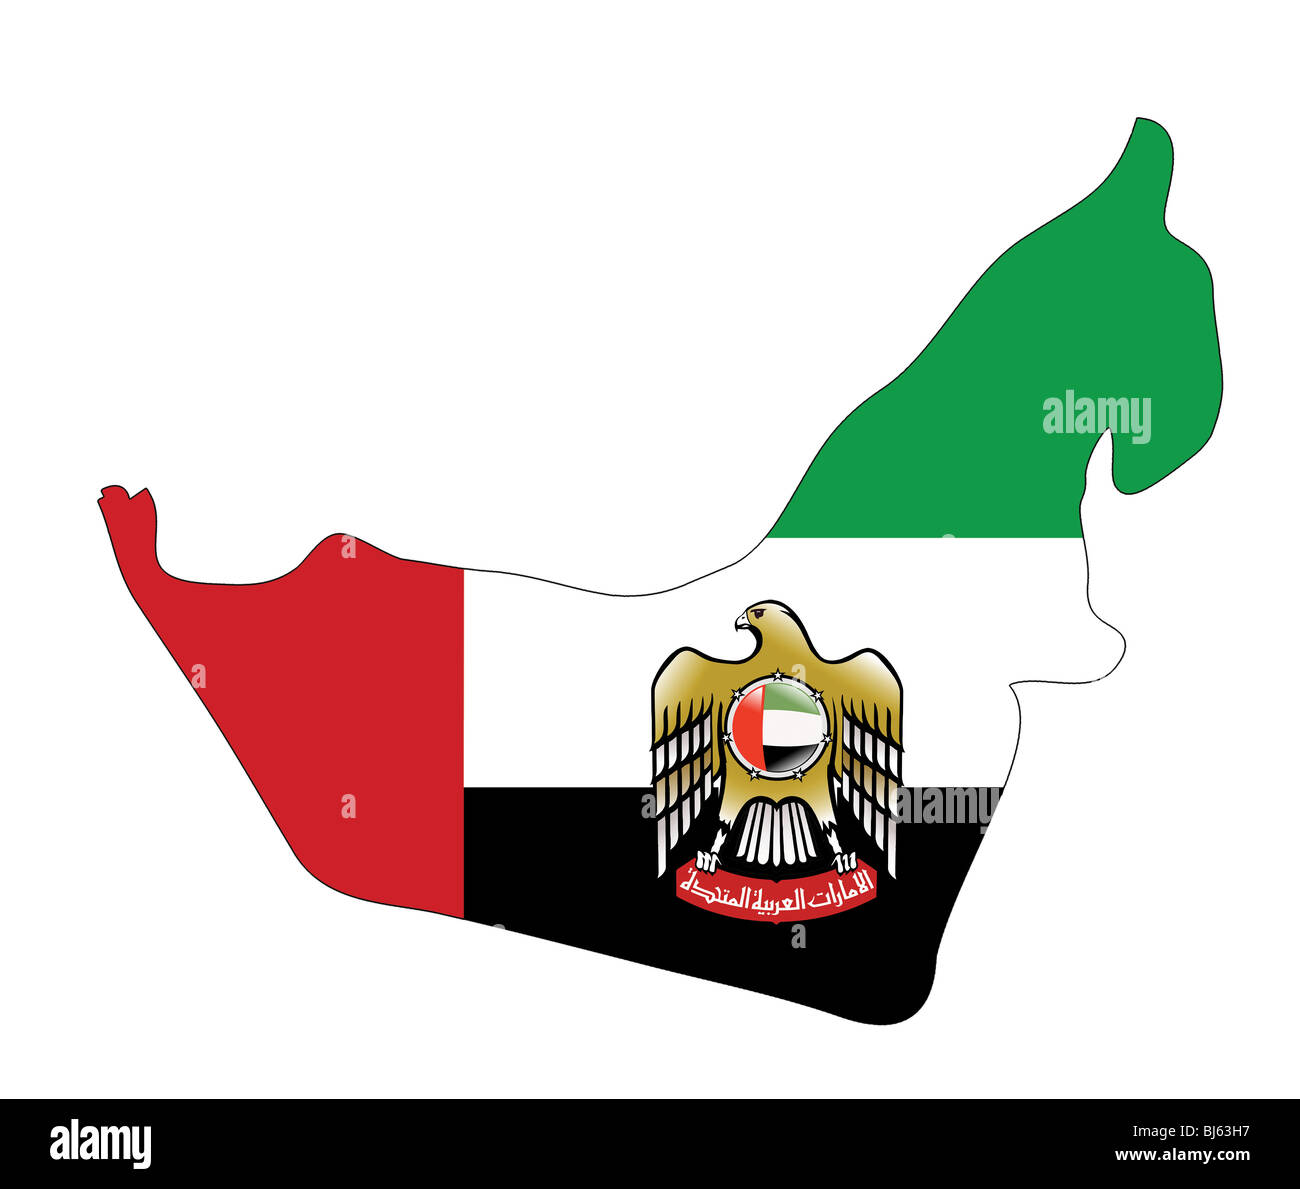 Uae Map Stock Photos & Uae Map Stock Images - Alamy